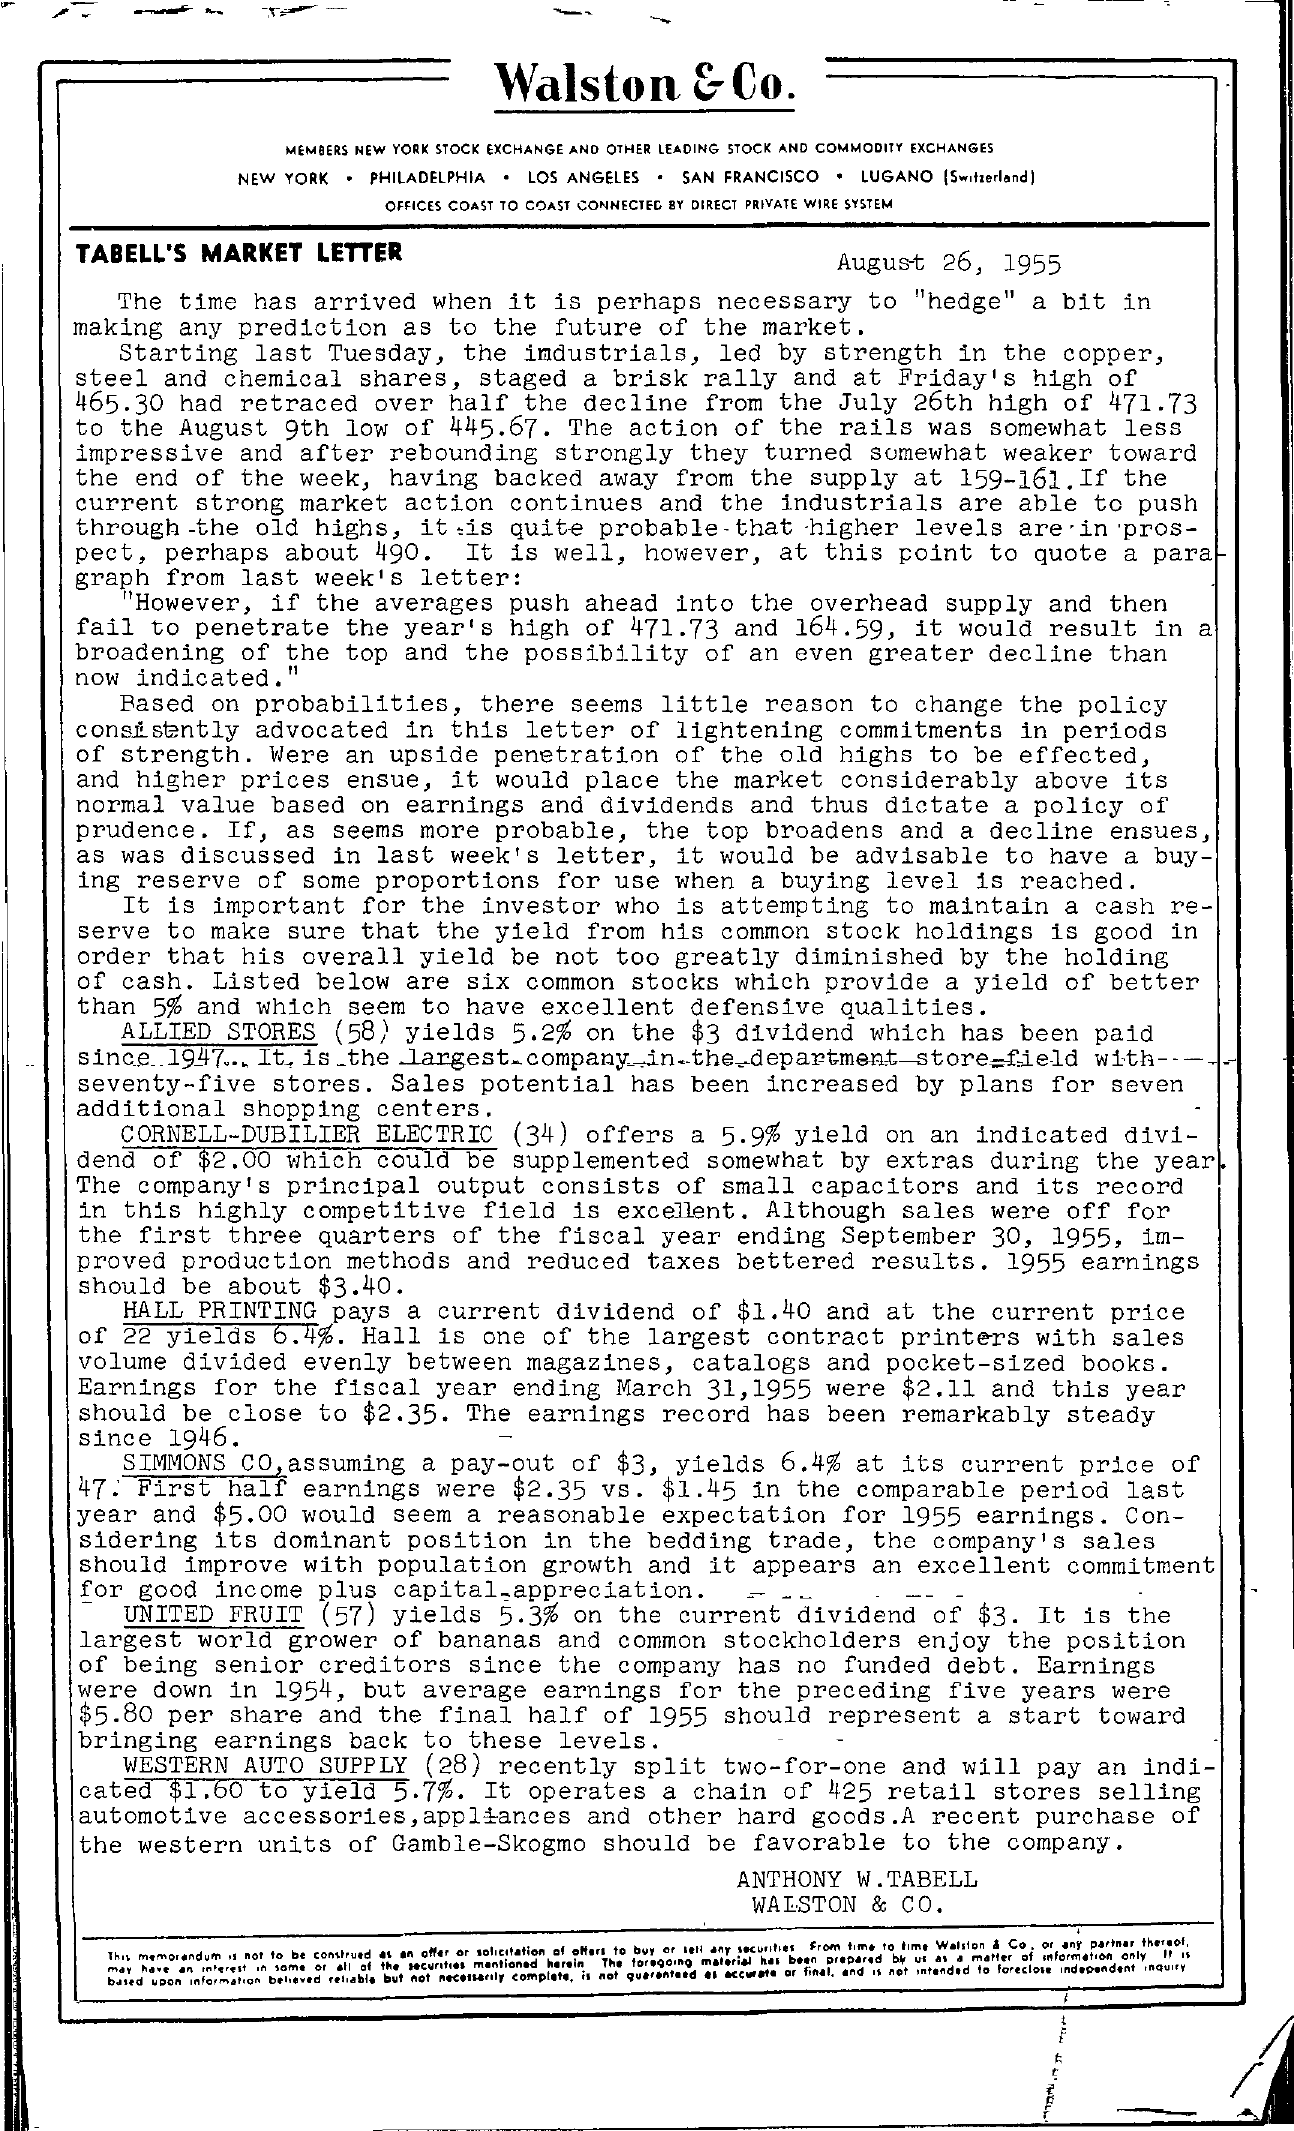 Tabell's Market Letter - August 26, 1955